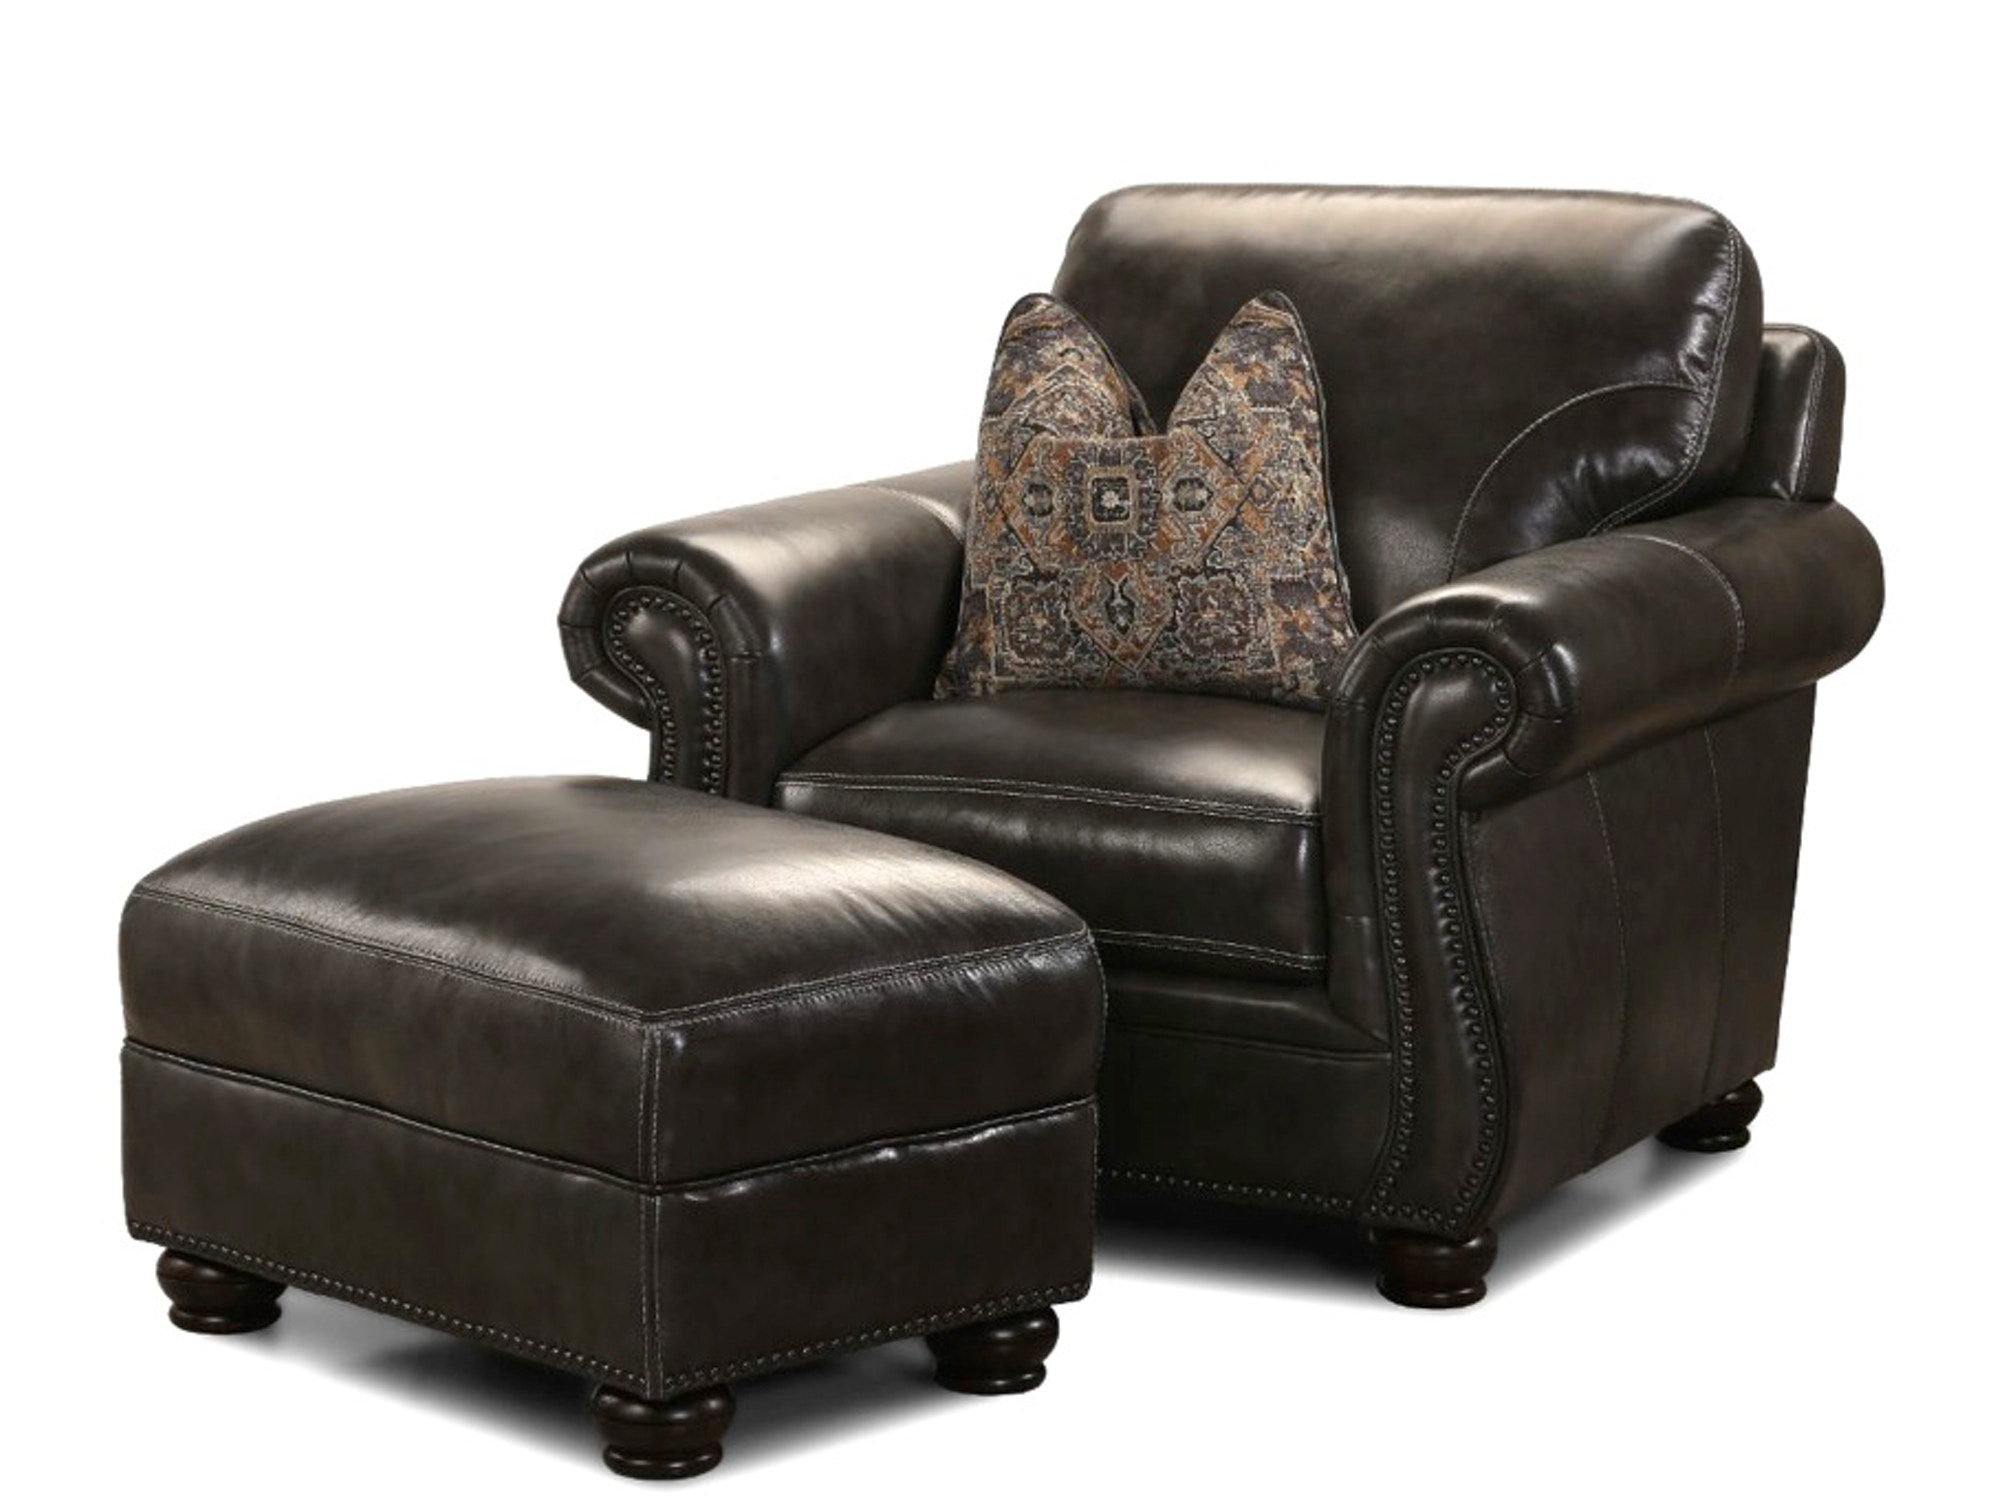 Charleston Leather Chair 048574